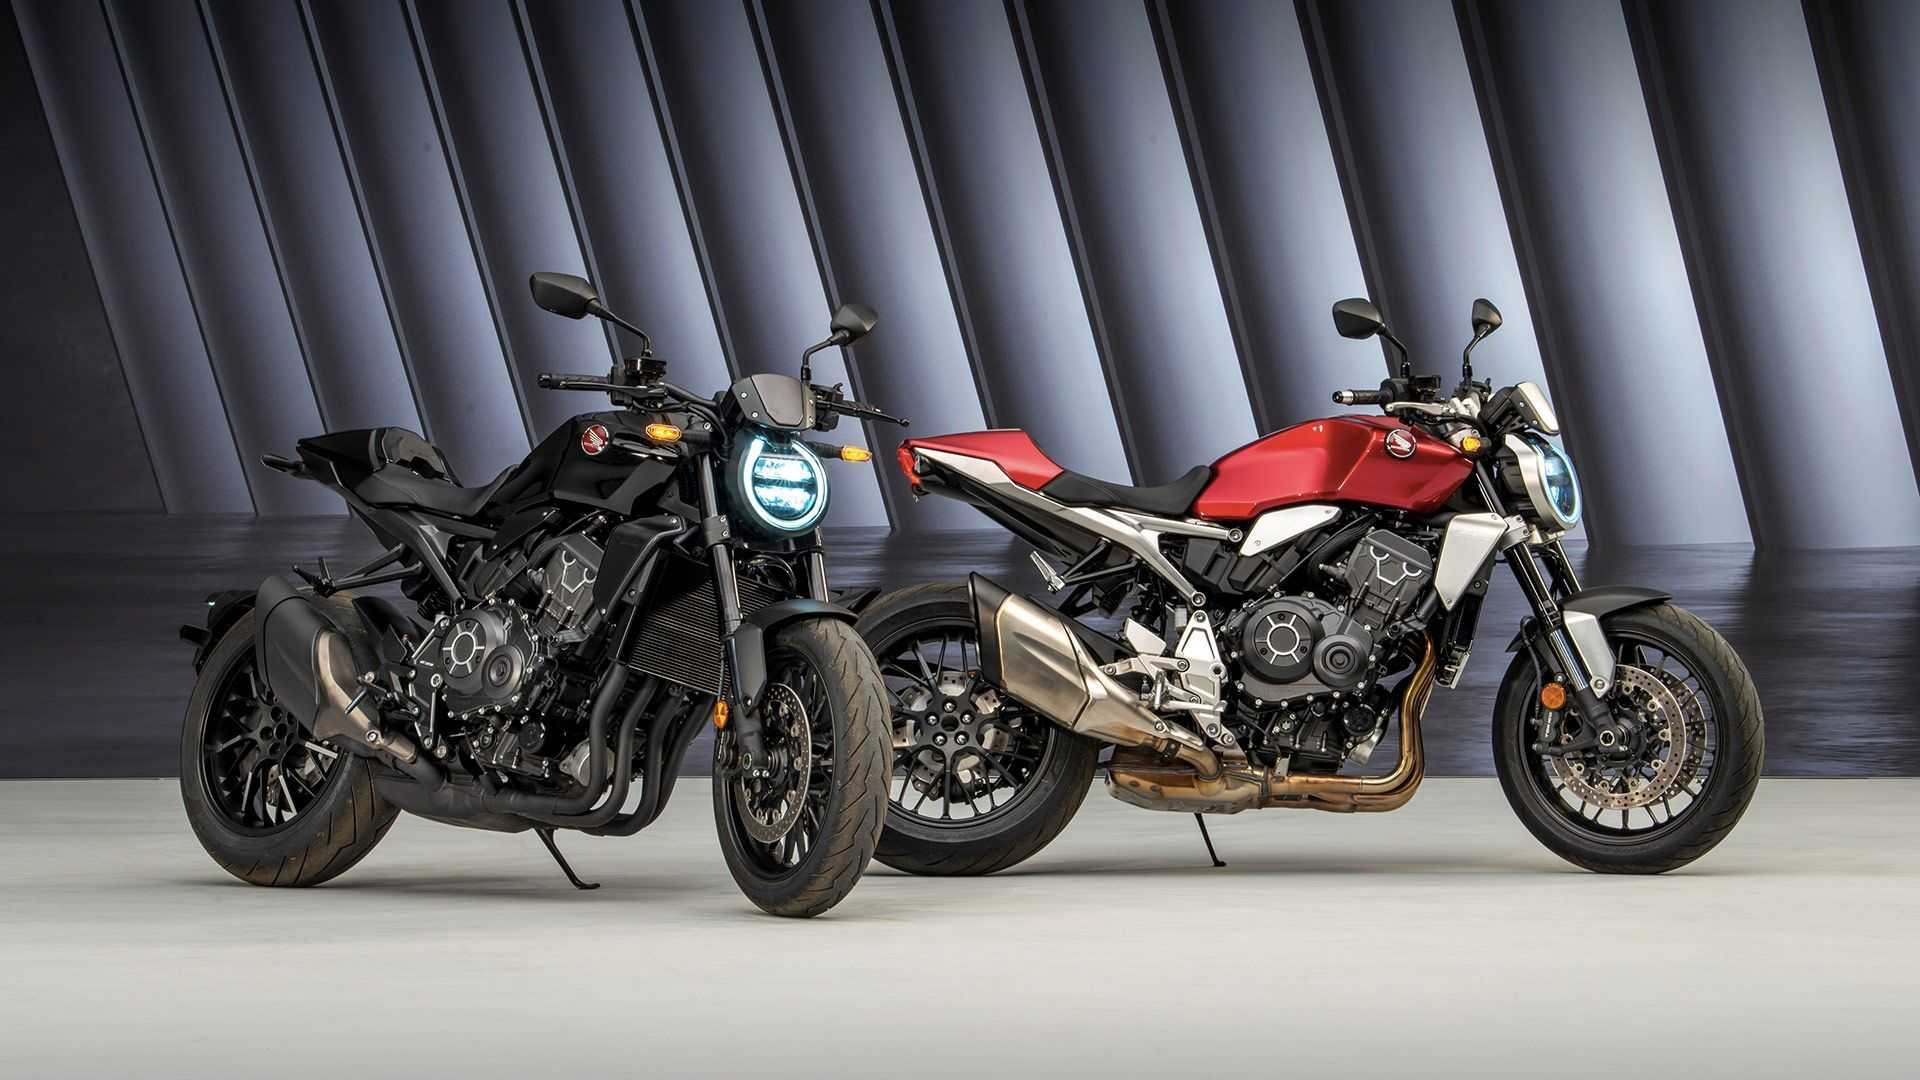 2021 Honda CB1000R and CB1000R Black Edition Launched